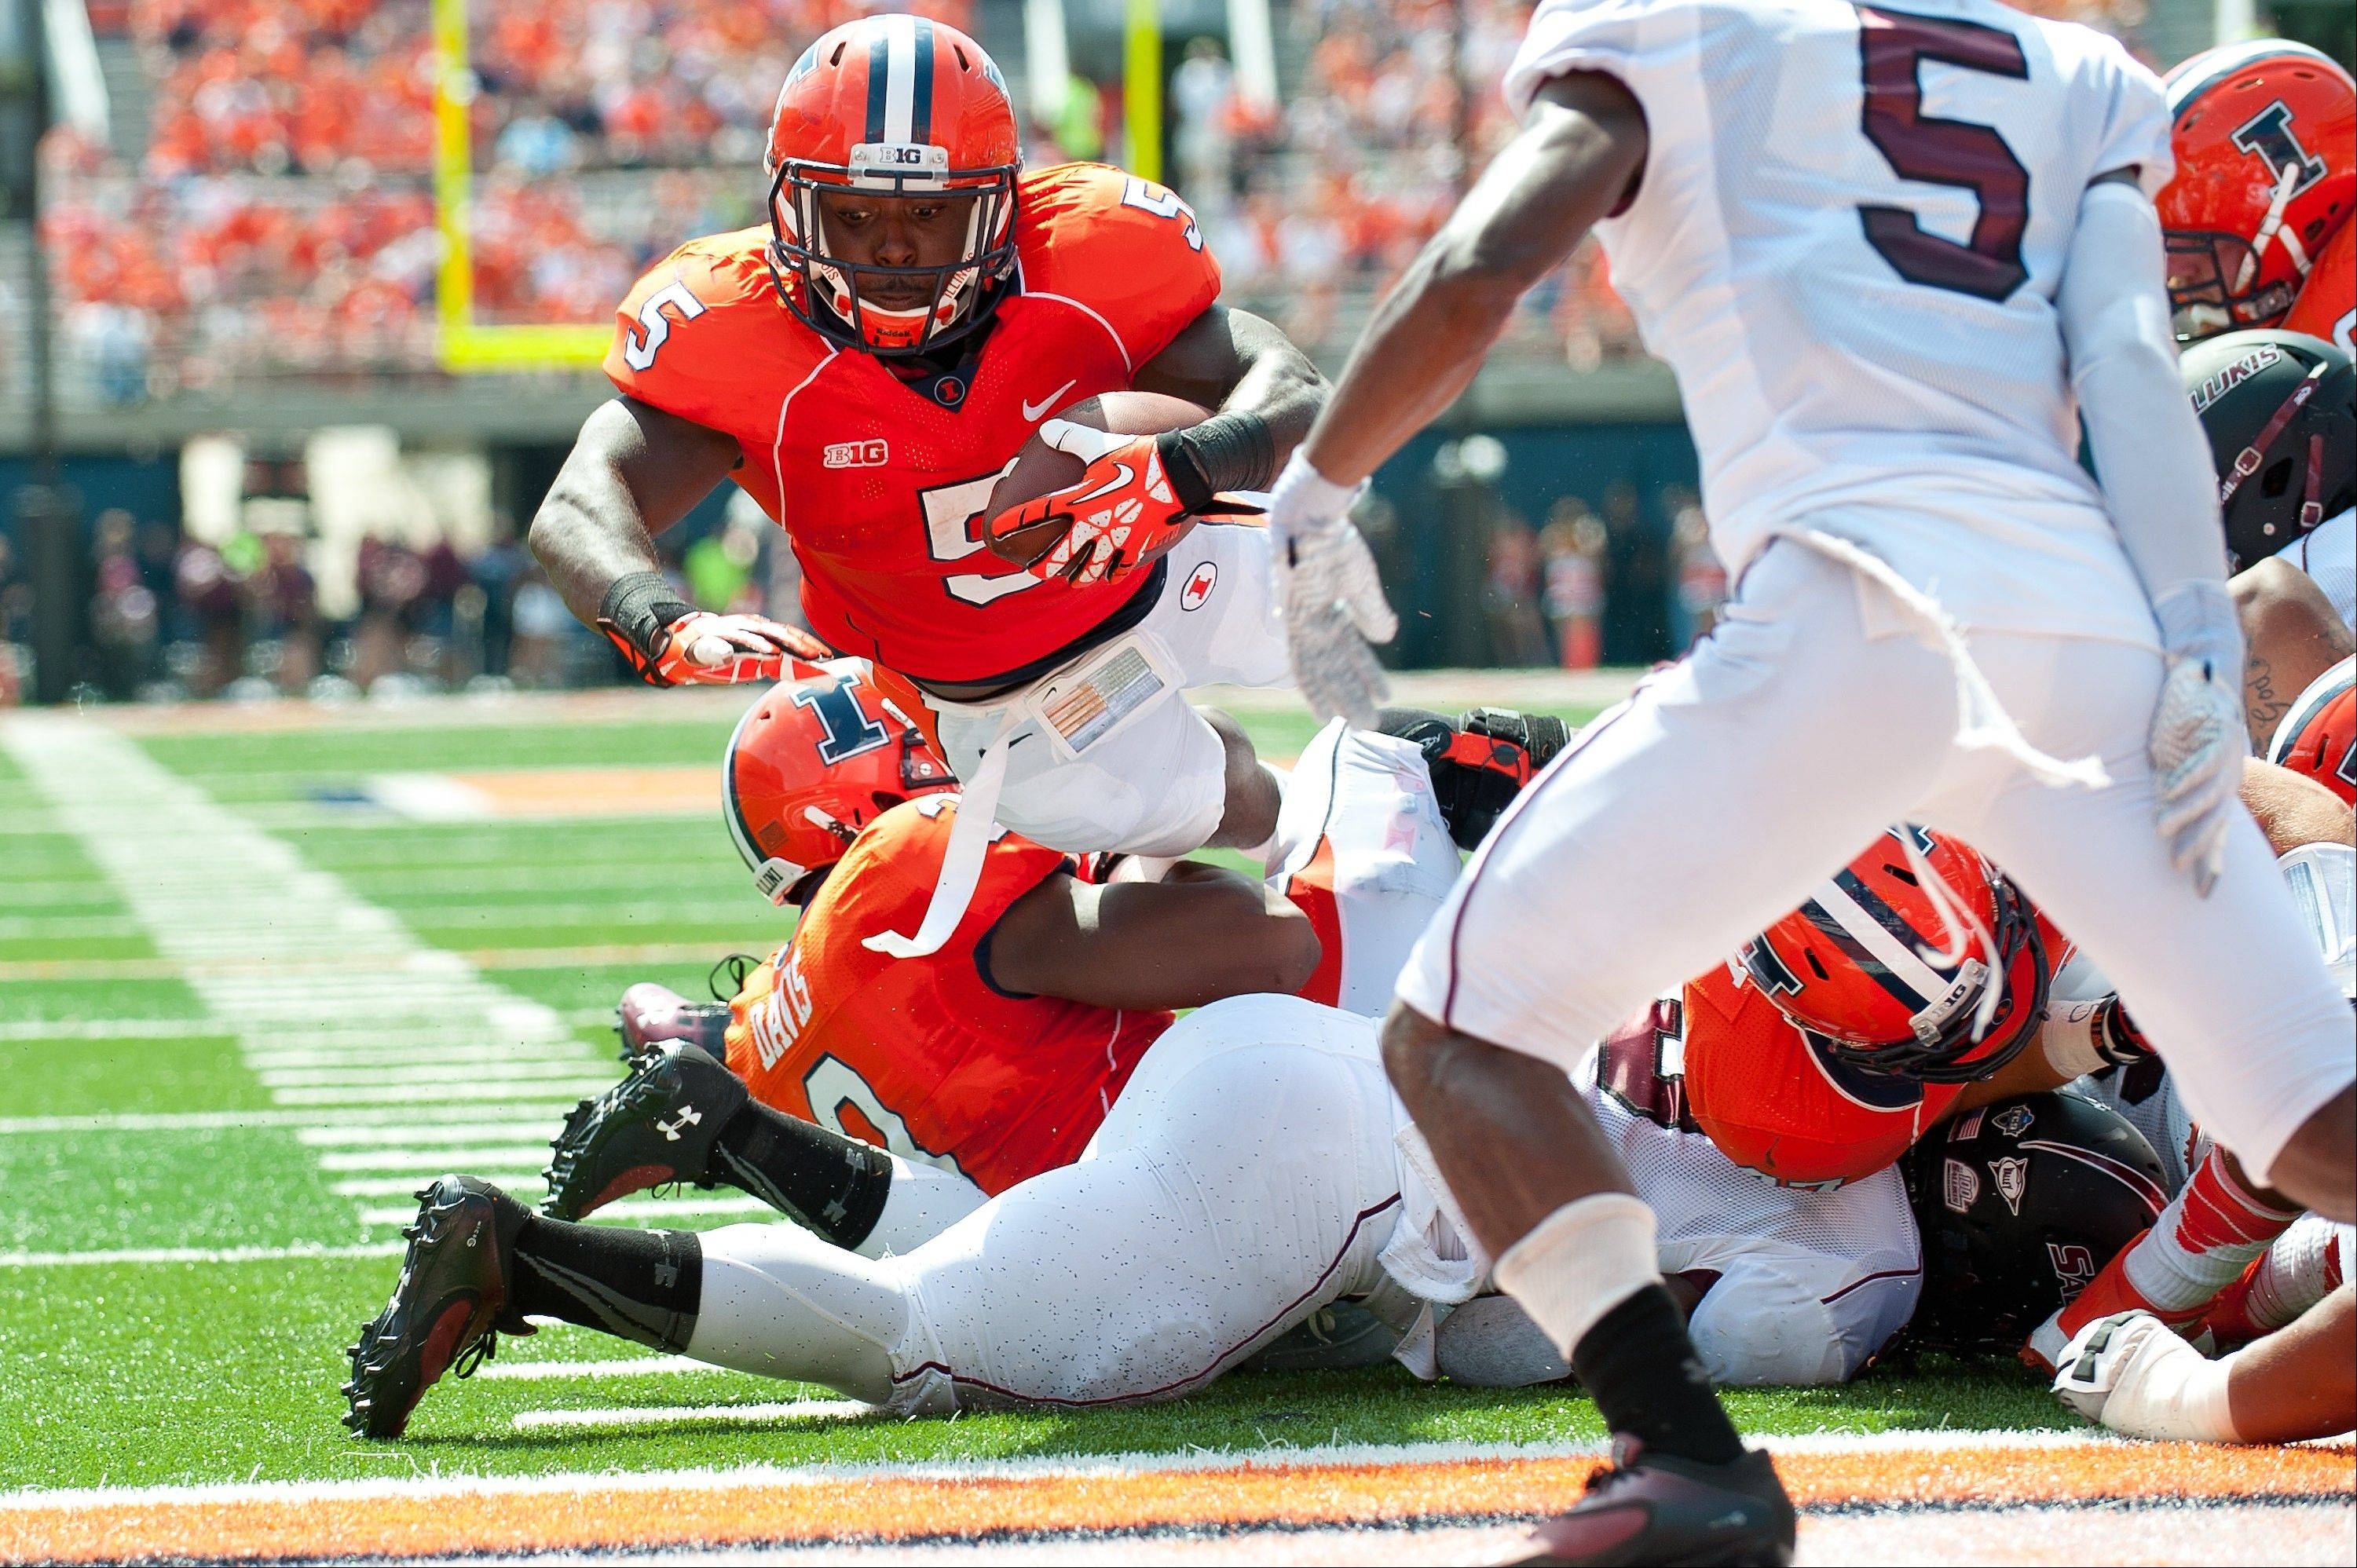 Illinois running back Donovonn Young (5) dives over the goal line for a touchdown during the second quarter.